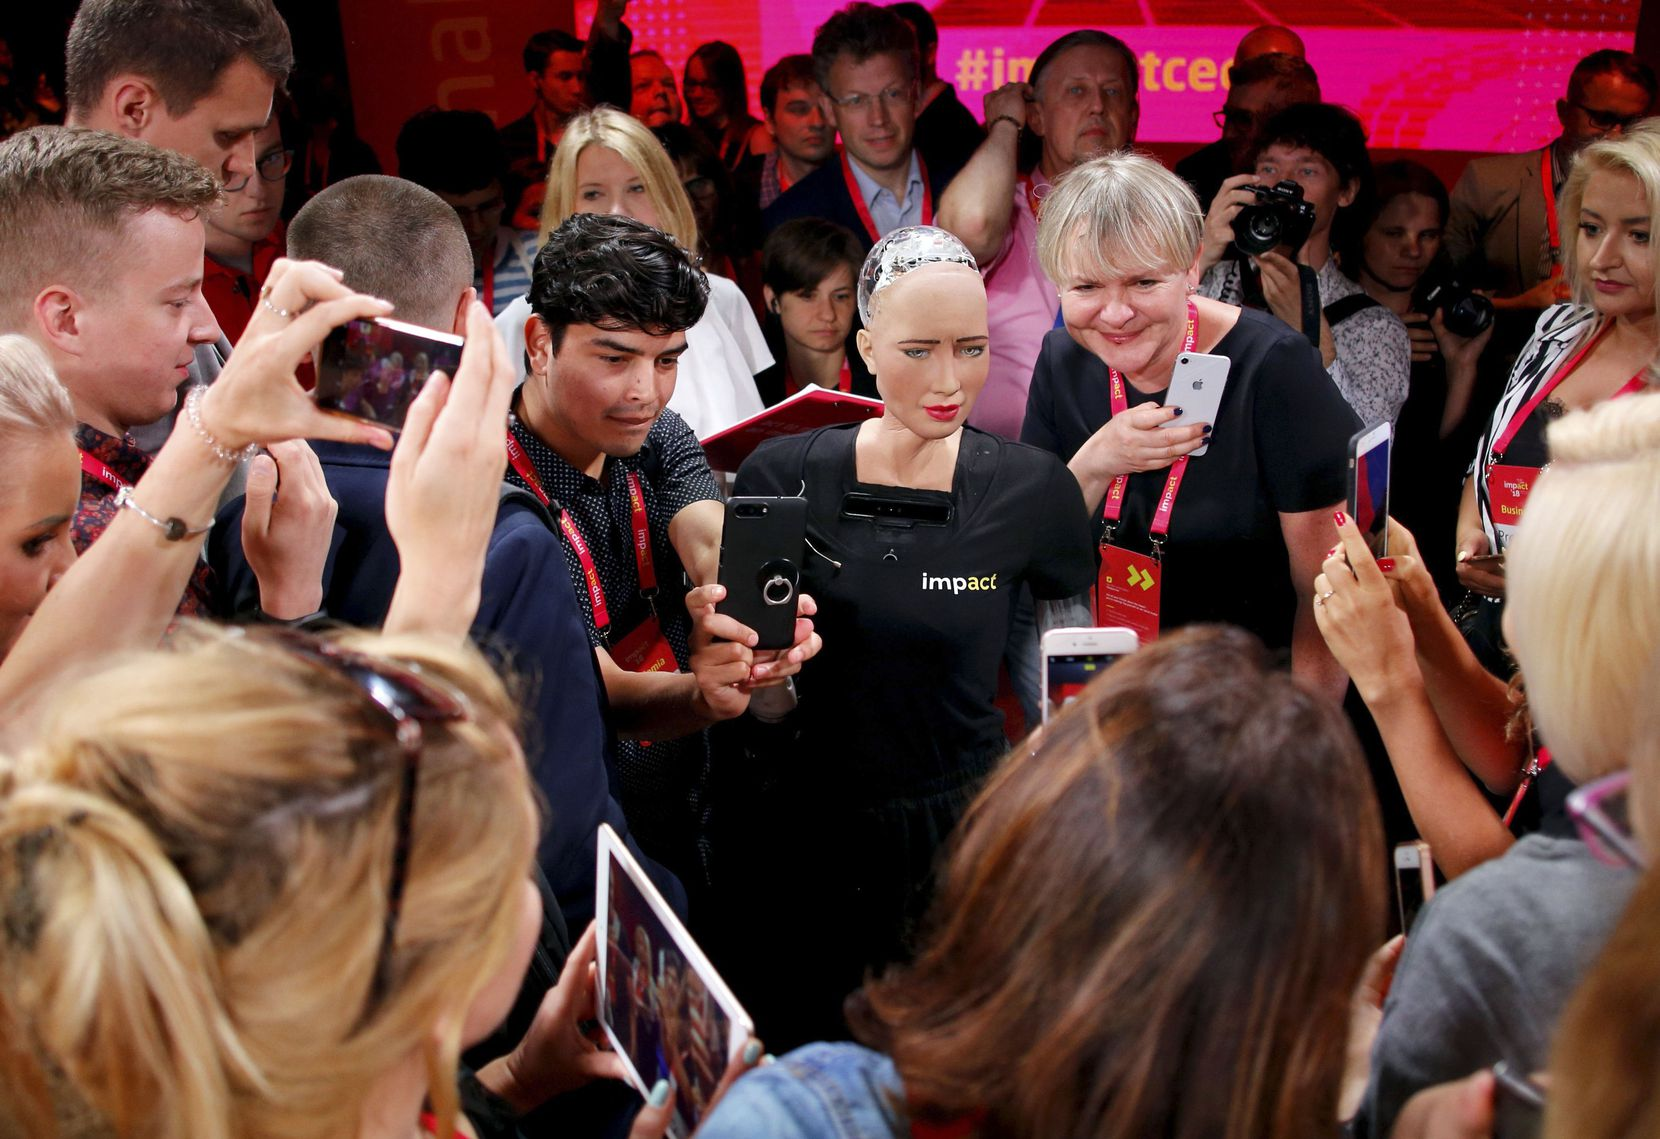 Attendees take photos of and with humanoid robot Sophia during the Impact 2018 digital economy forum on June 13, 2018 in Krakow, Poland.